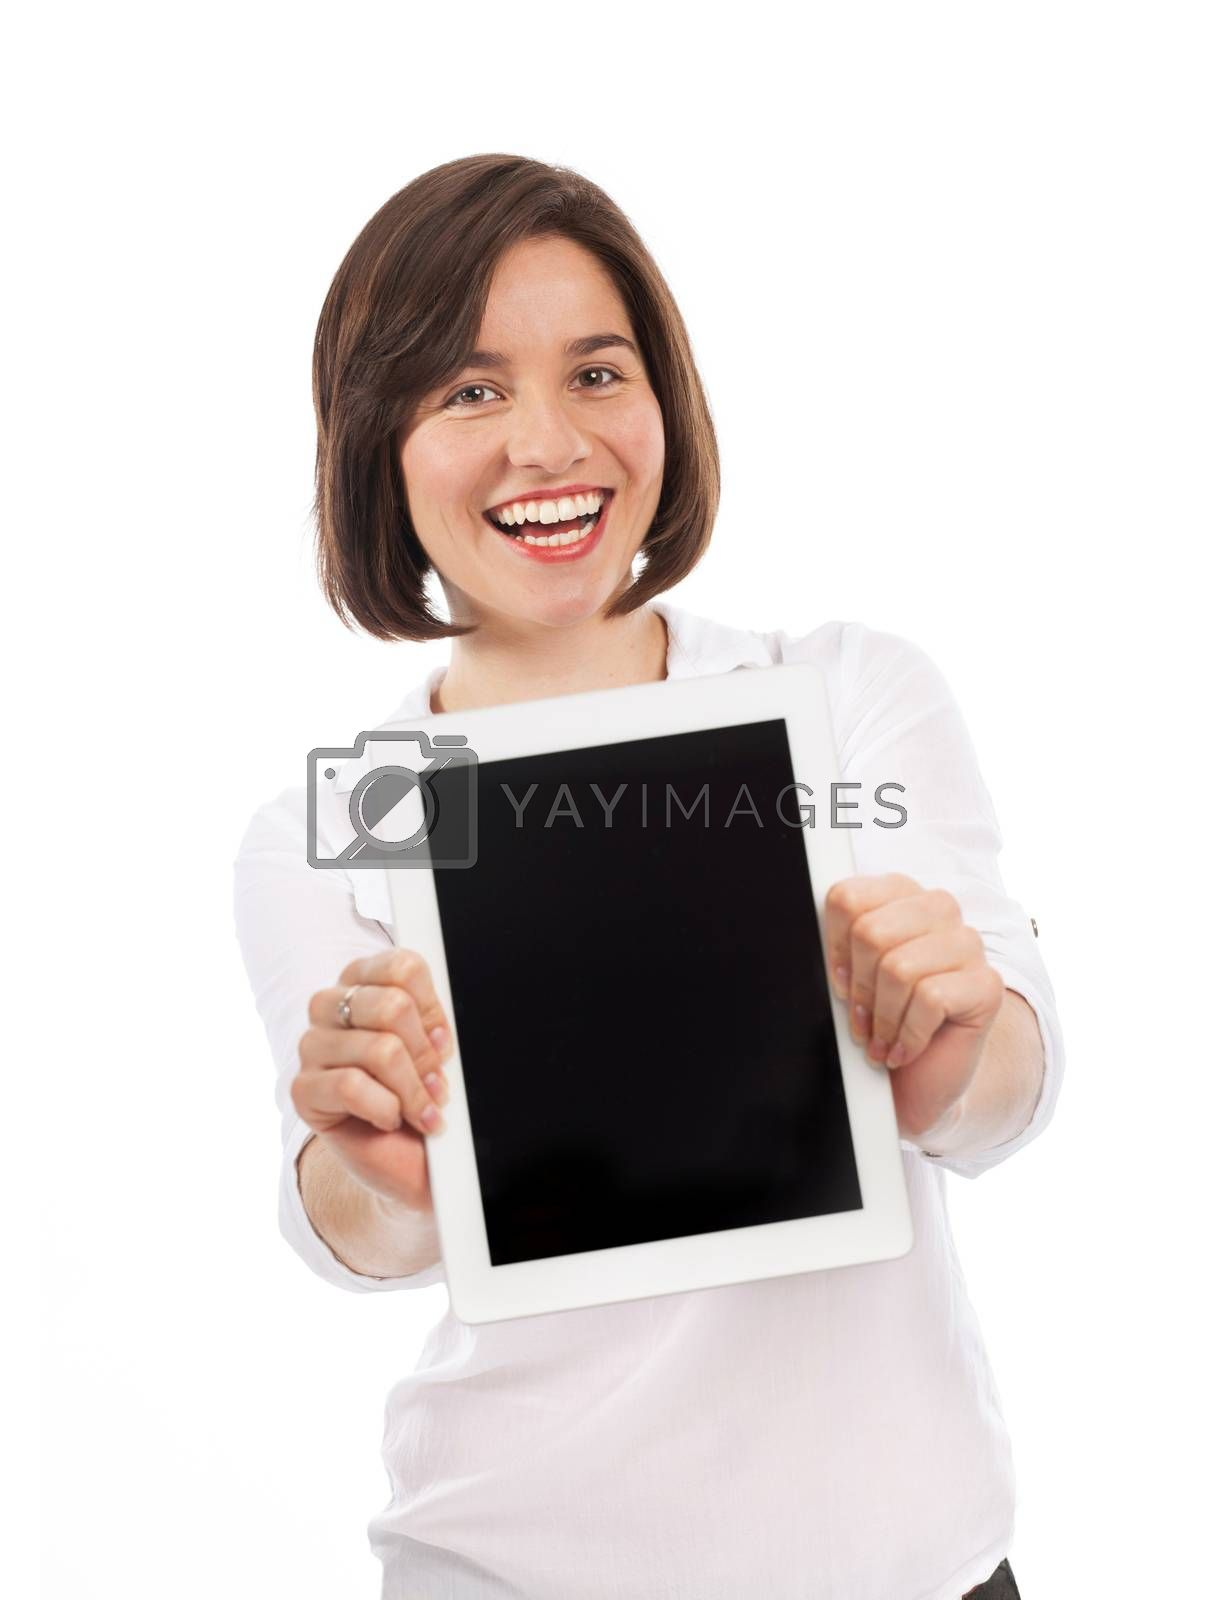 Young woman presenting a blank touchpad, communication concept, isolated on white